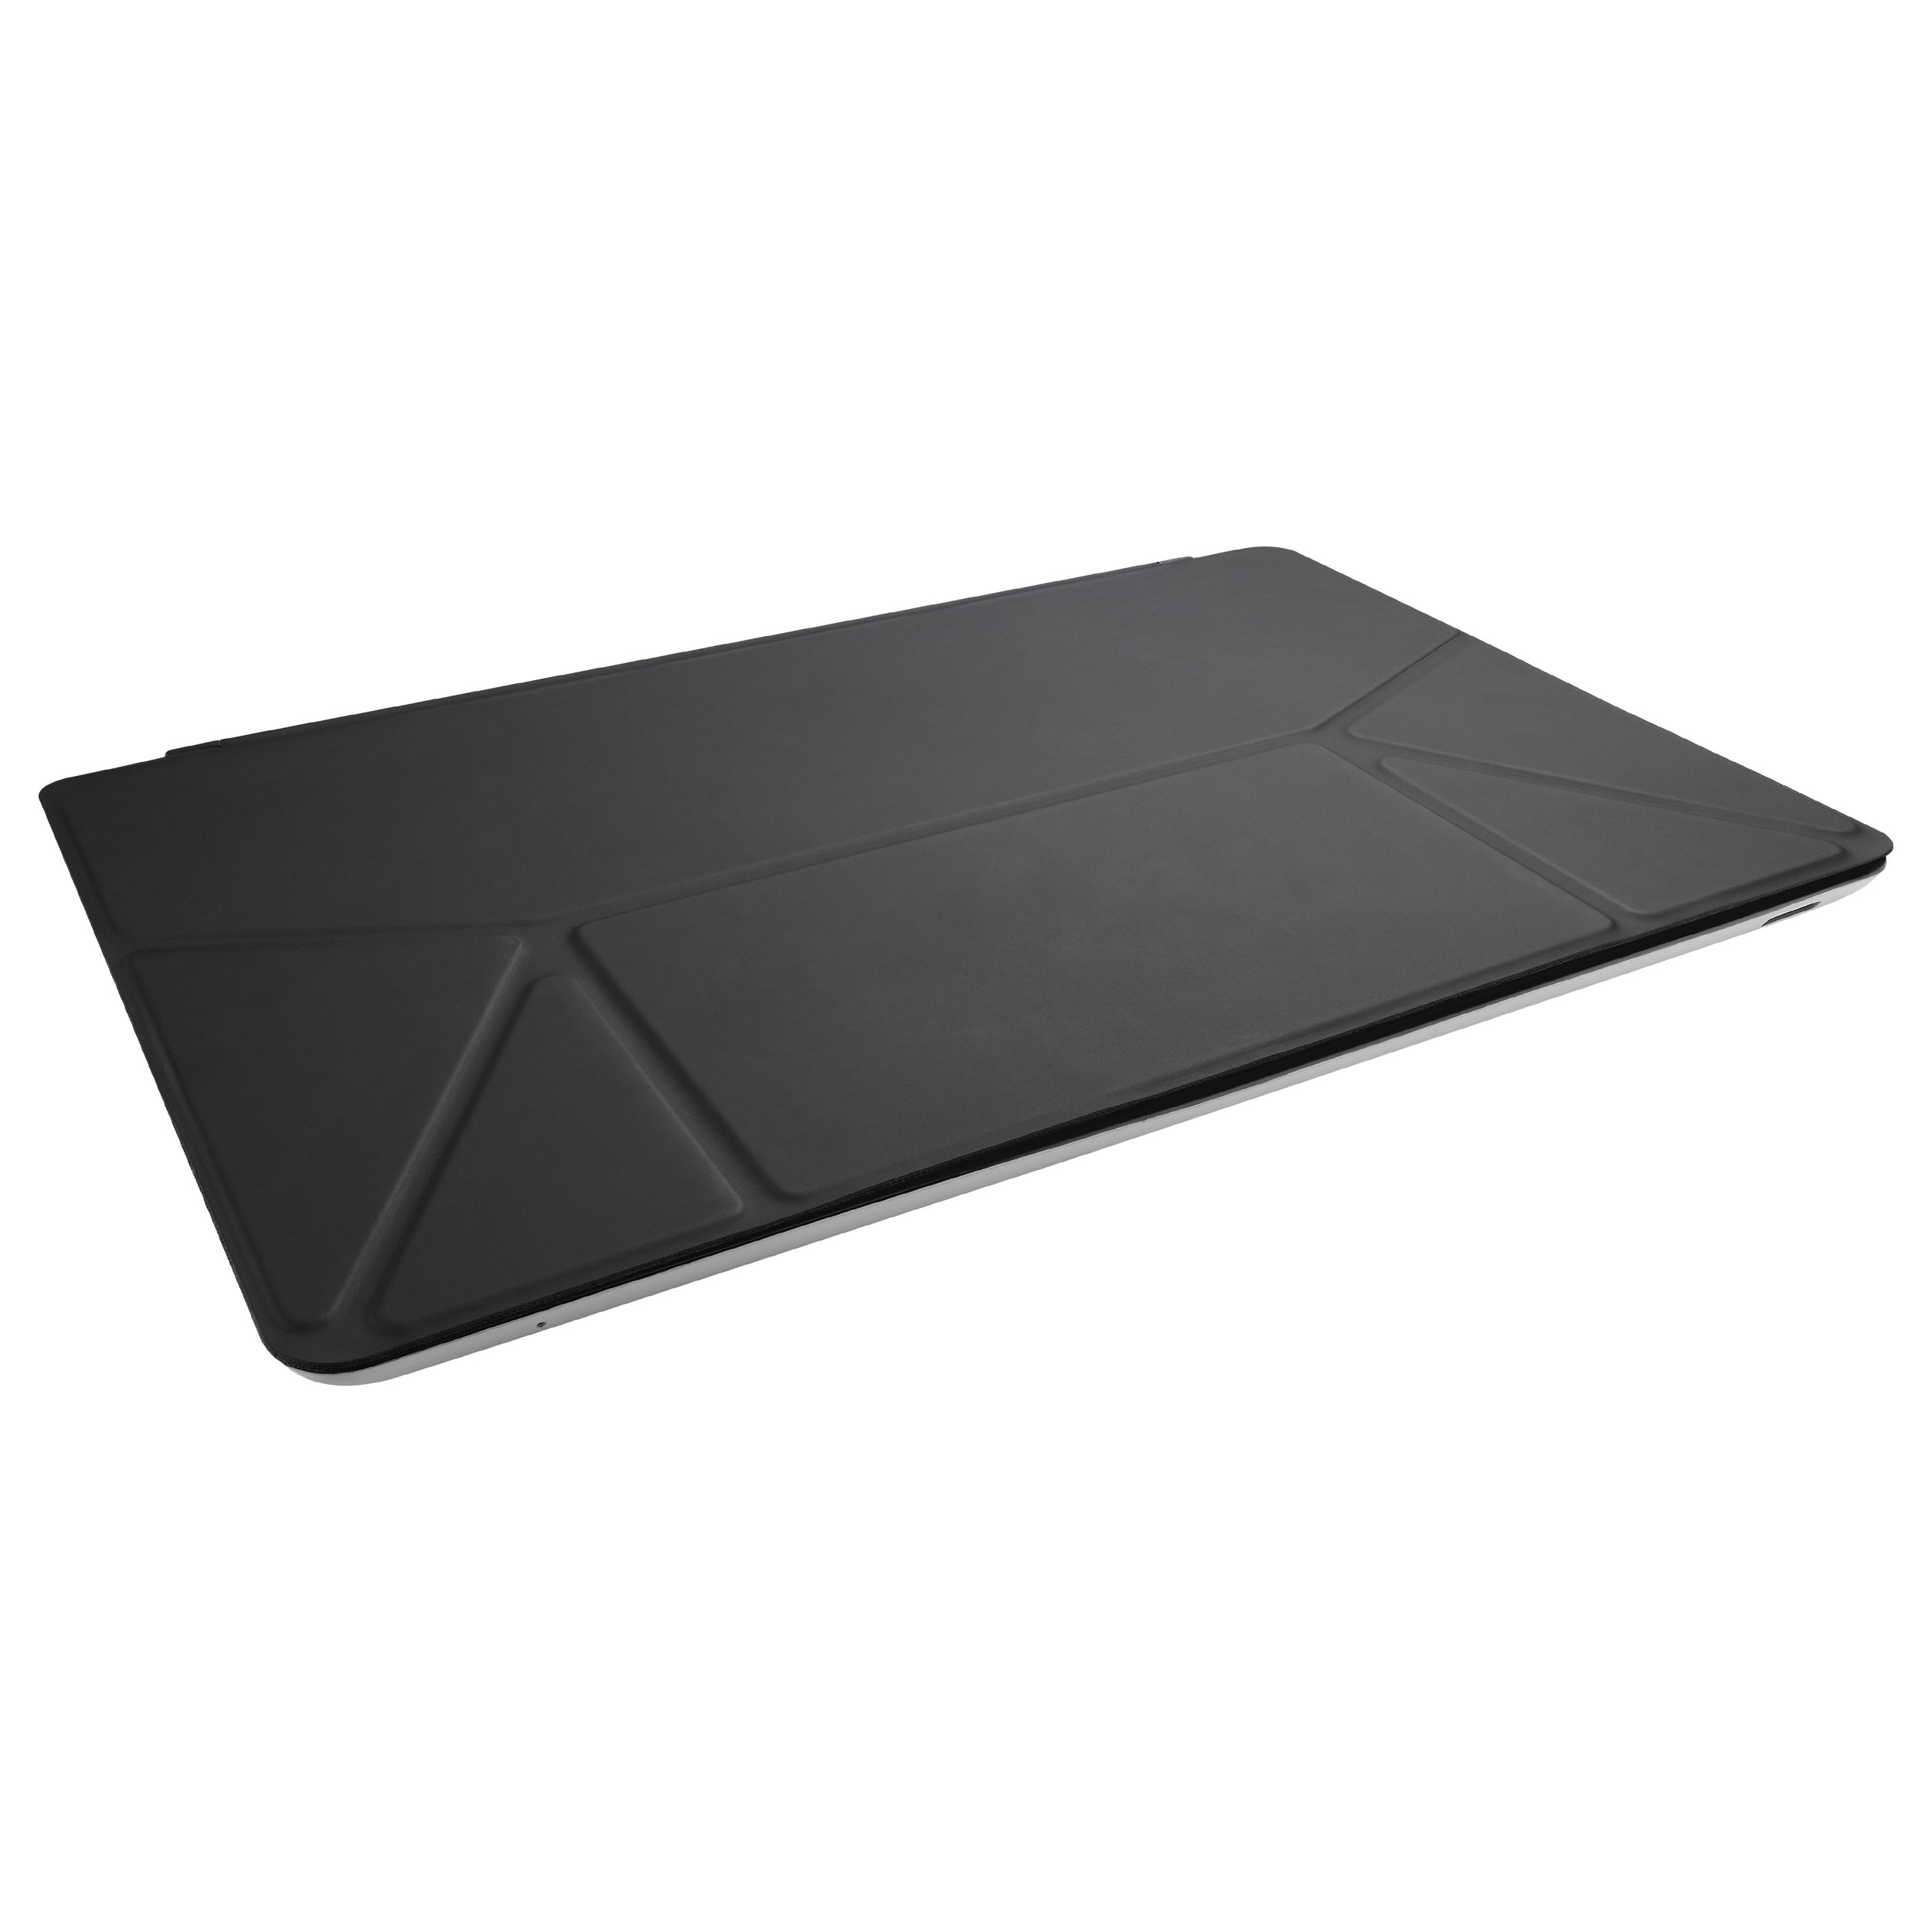 "Asus TranSleeve Cover Case (Cover) for 10"" Tablet PC - Black"